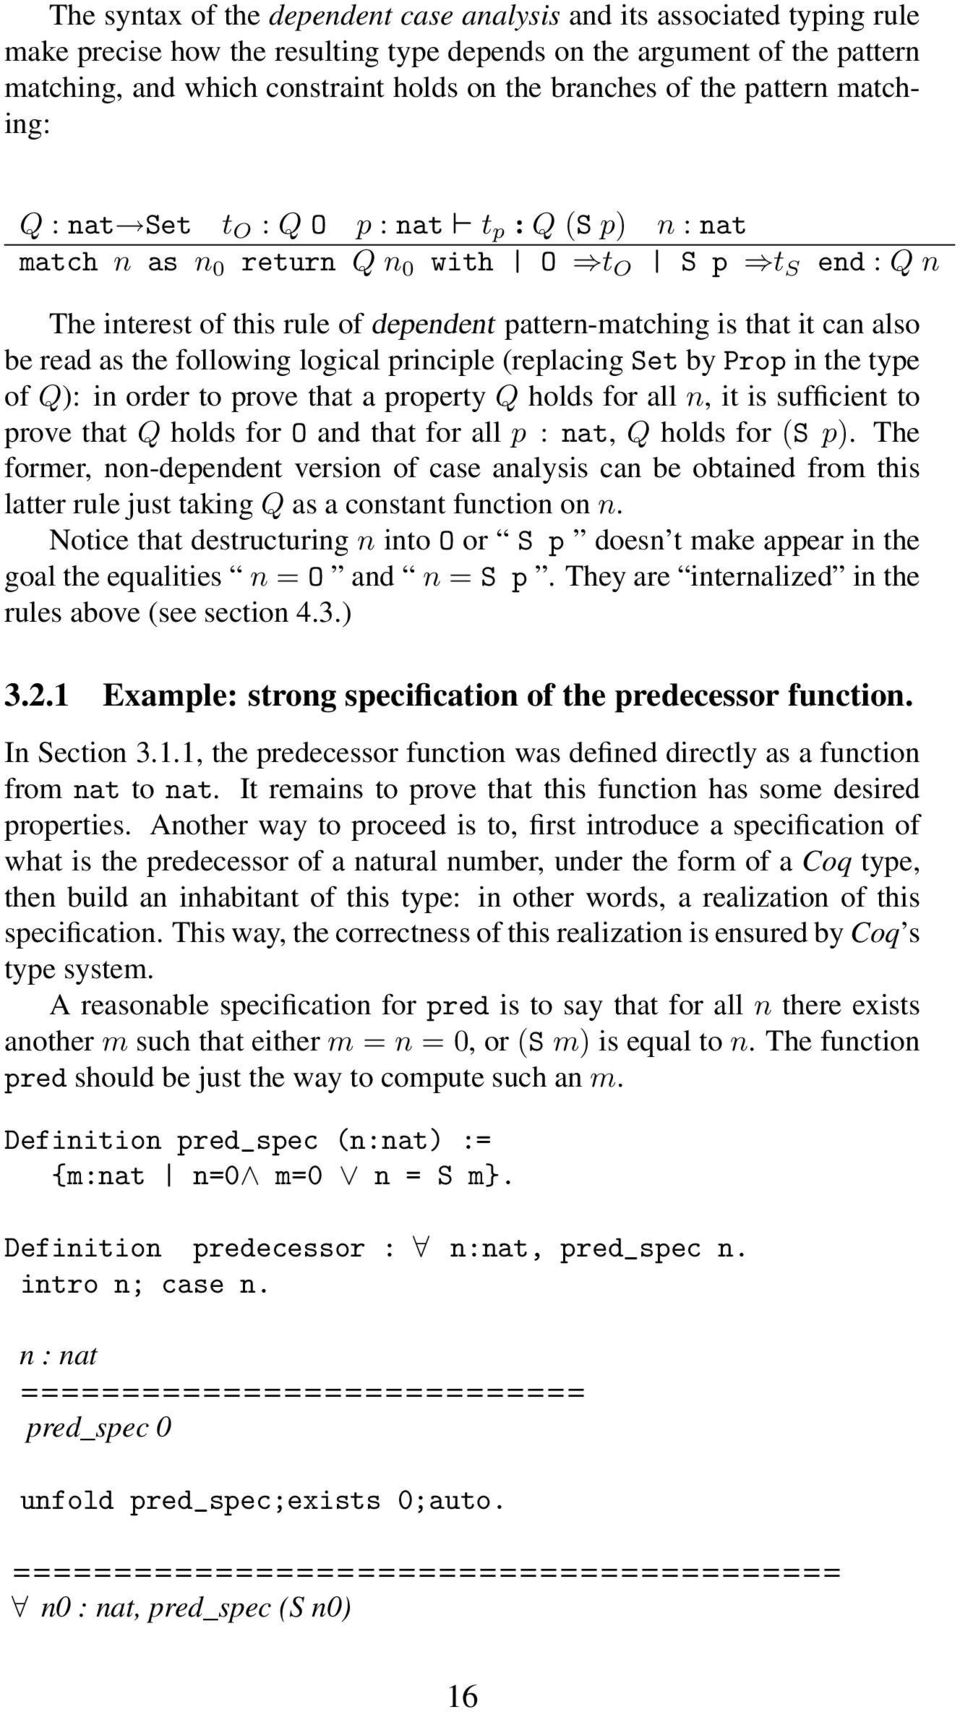 is that it can also be read as the following logical principle (replacing Set by Prop in the type of Q): in order to prove that a property Q holds for all n, it is sufficient to prove that Q holds